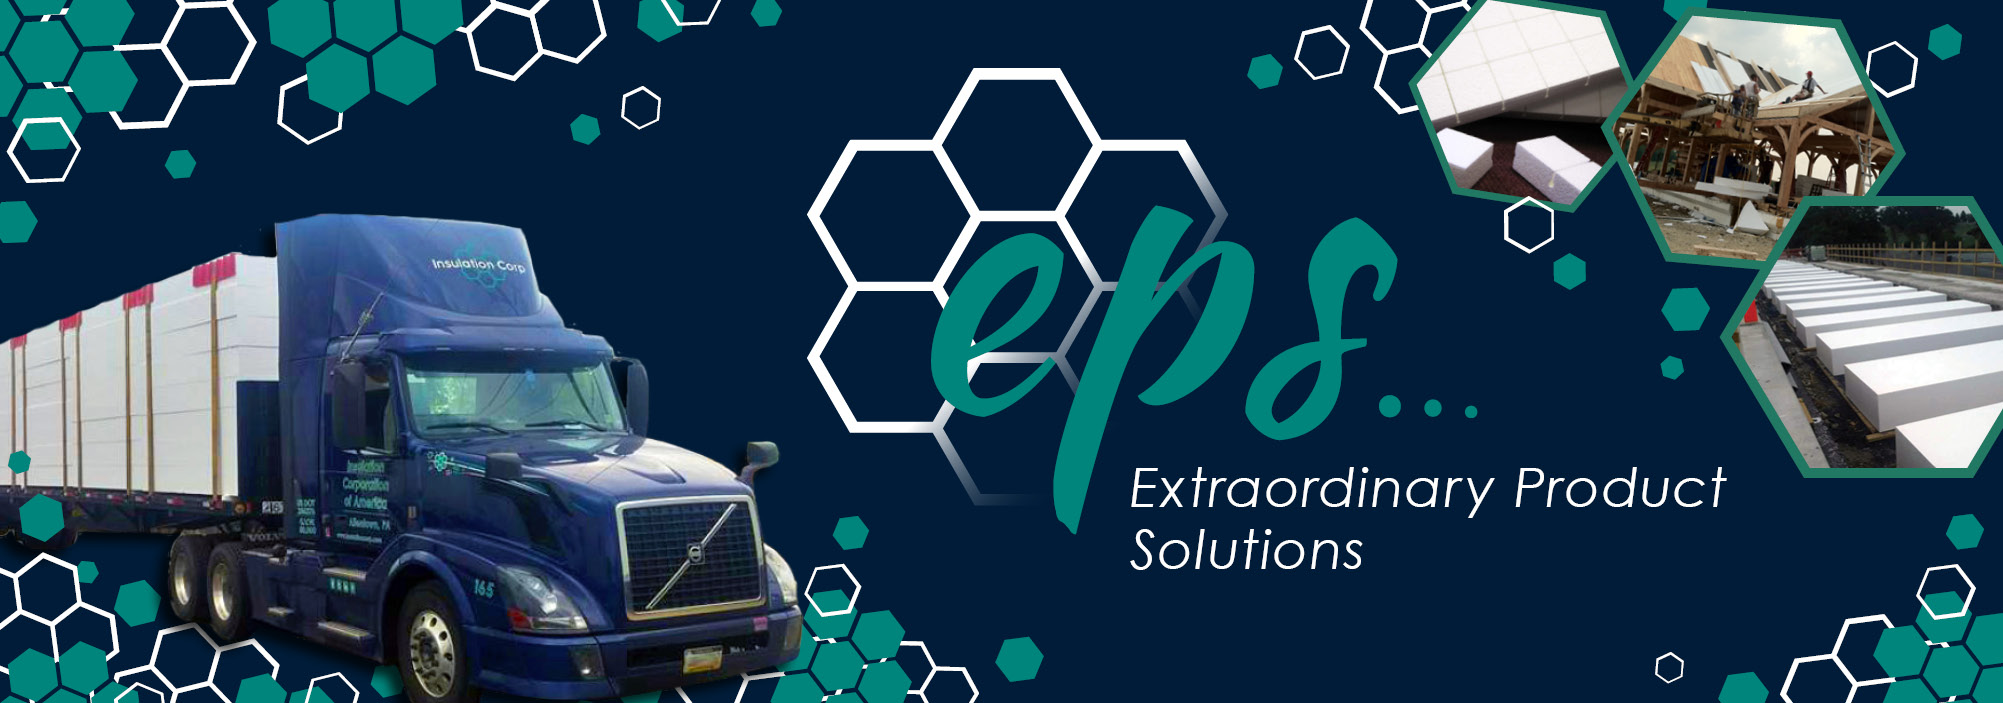 EPS...Extraordinary Product Solutions